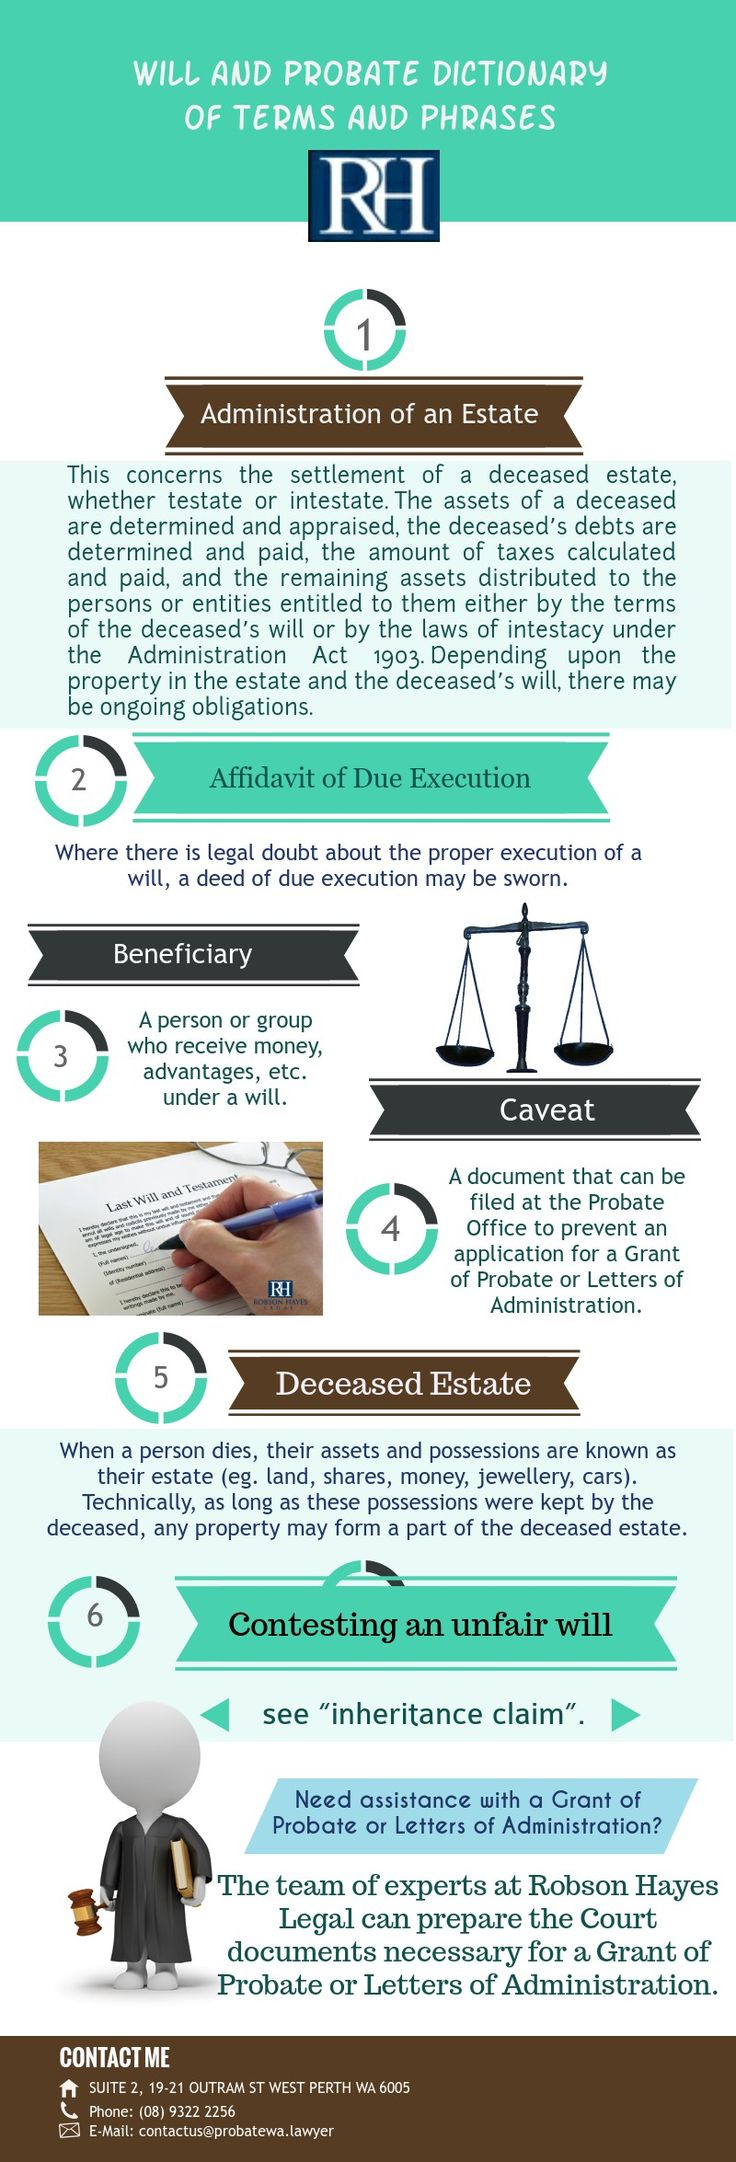 18 best infographics images on pinterest infographic infographics do you want to know about terms and phrases of will and probate the team solutioingenieria Gallery